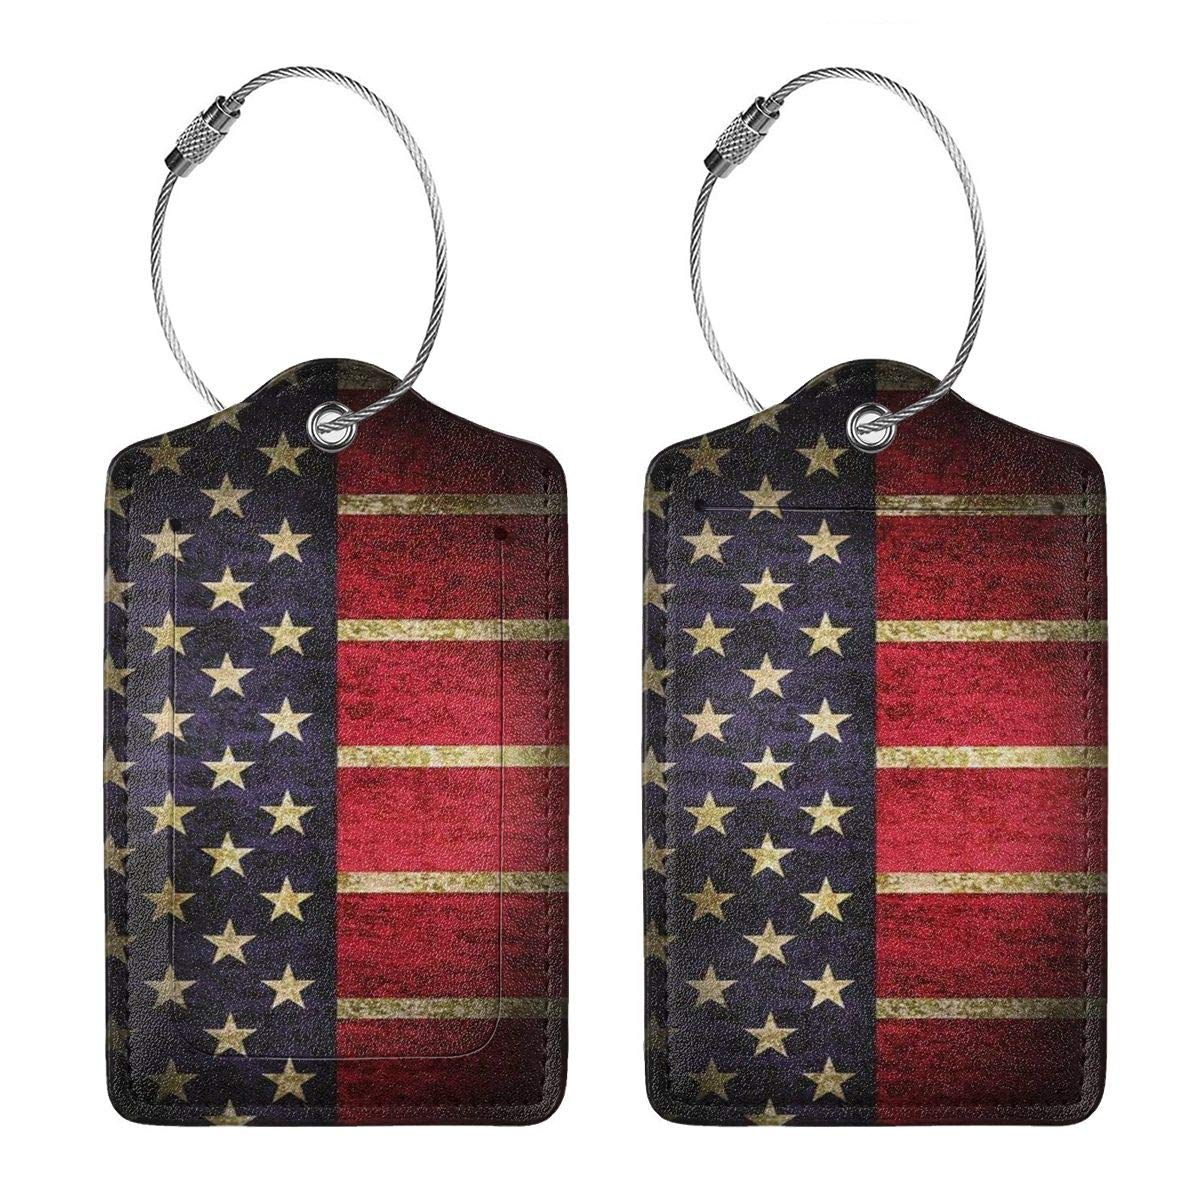 USA American Flag Luggage Tags With Full Back Privacy Cover W//Steel Loops